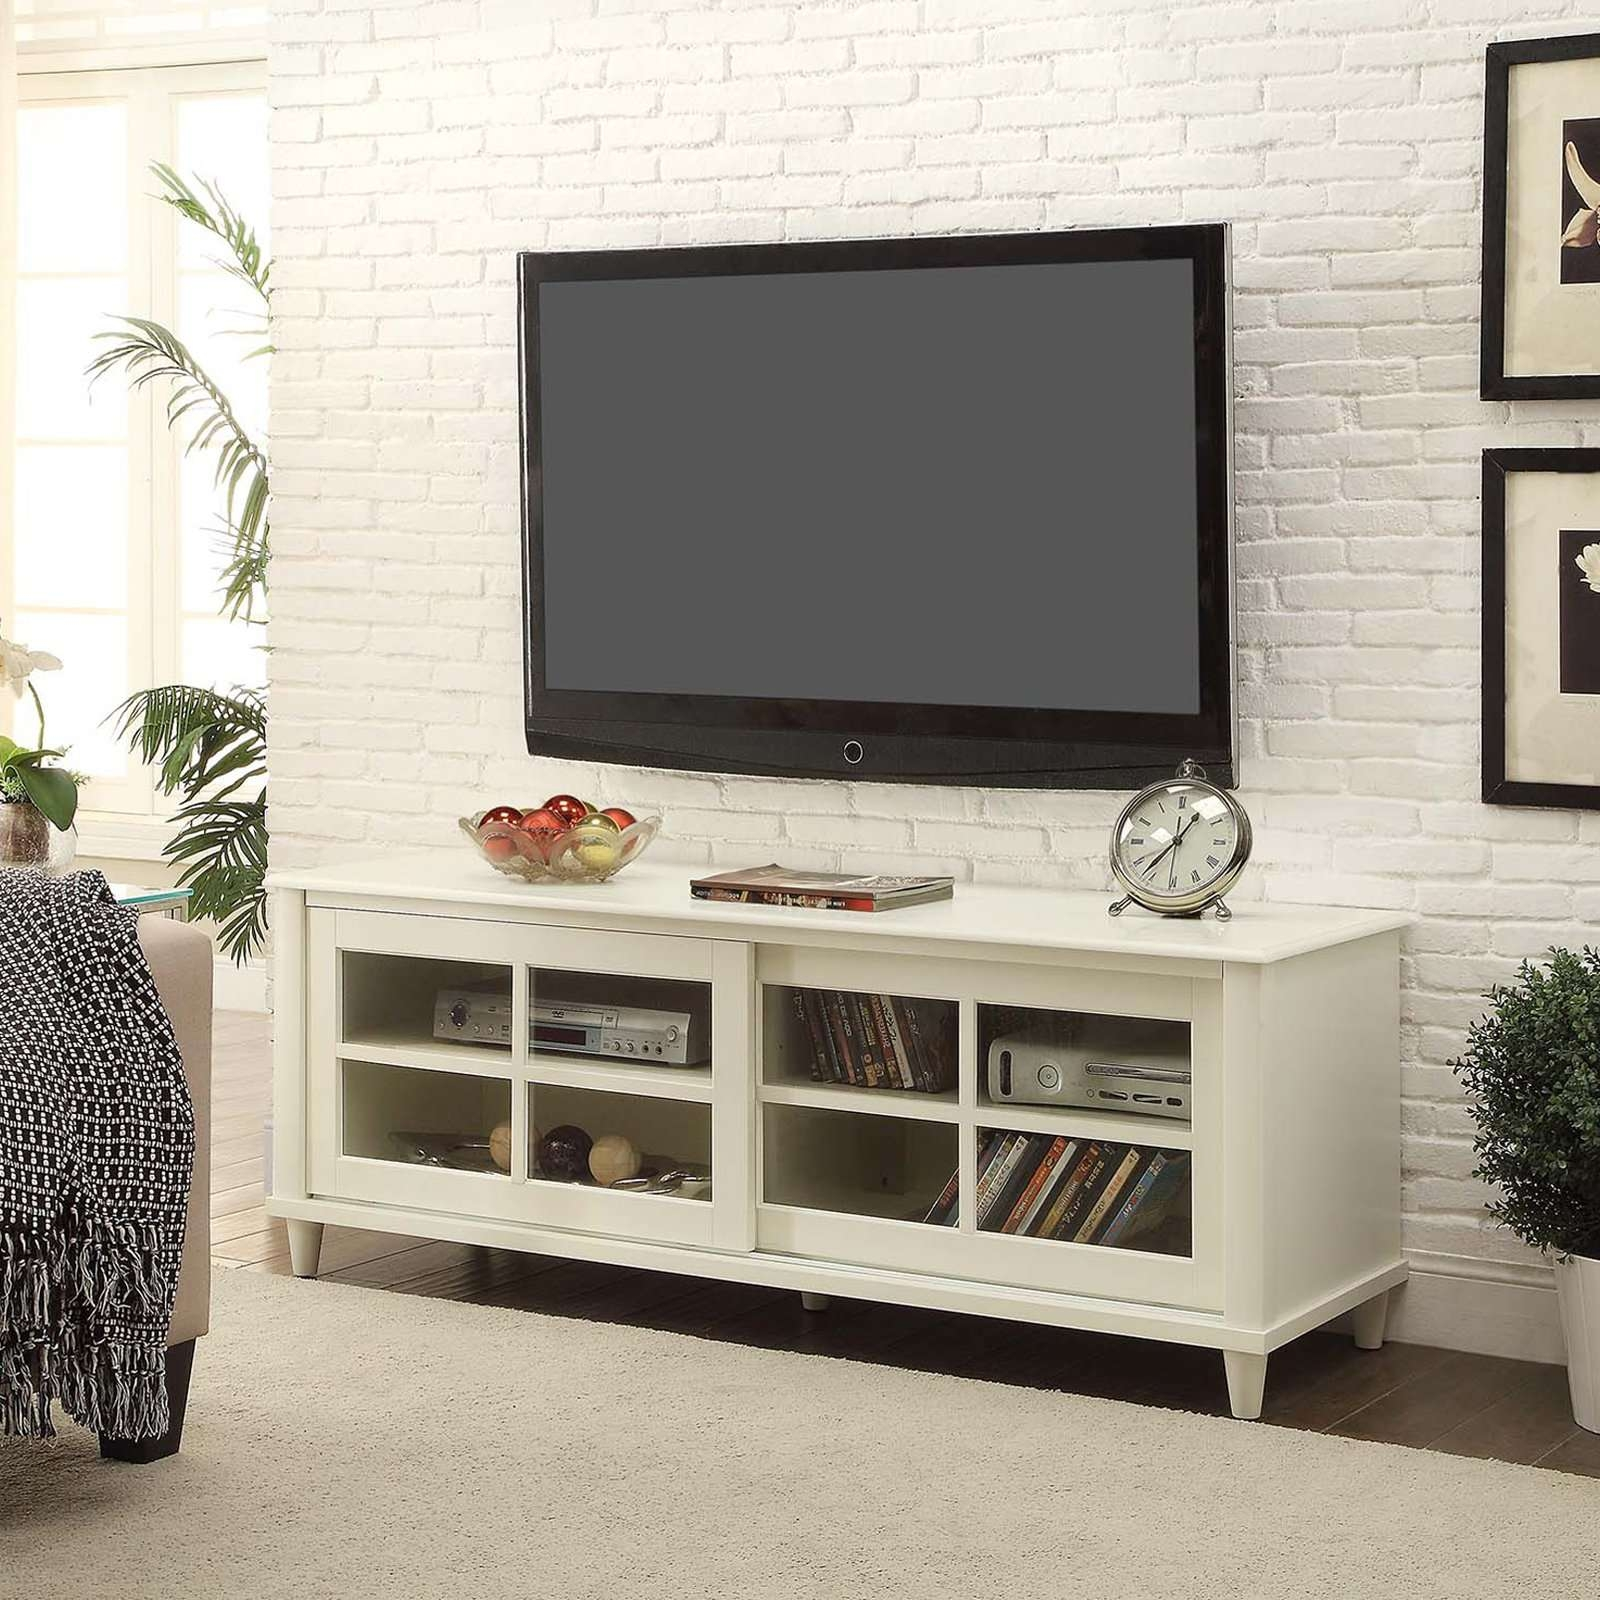 Convenience Concepts French Country Black & Cherry Tv Stand, For Inside French Country Tv Stands (View 9 of 15)